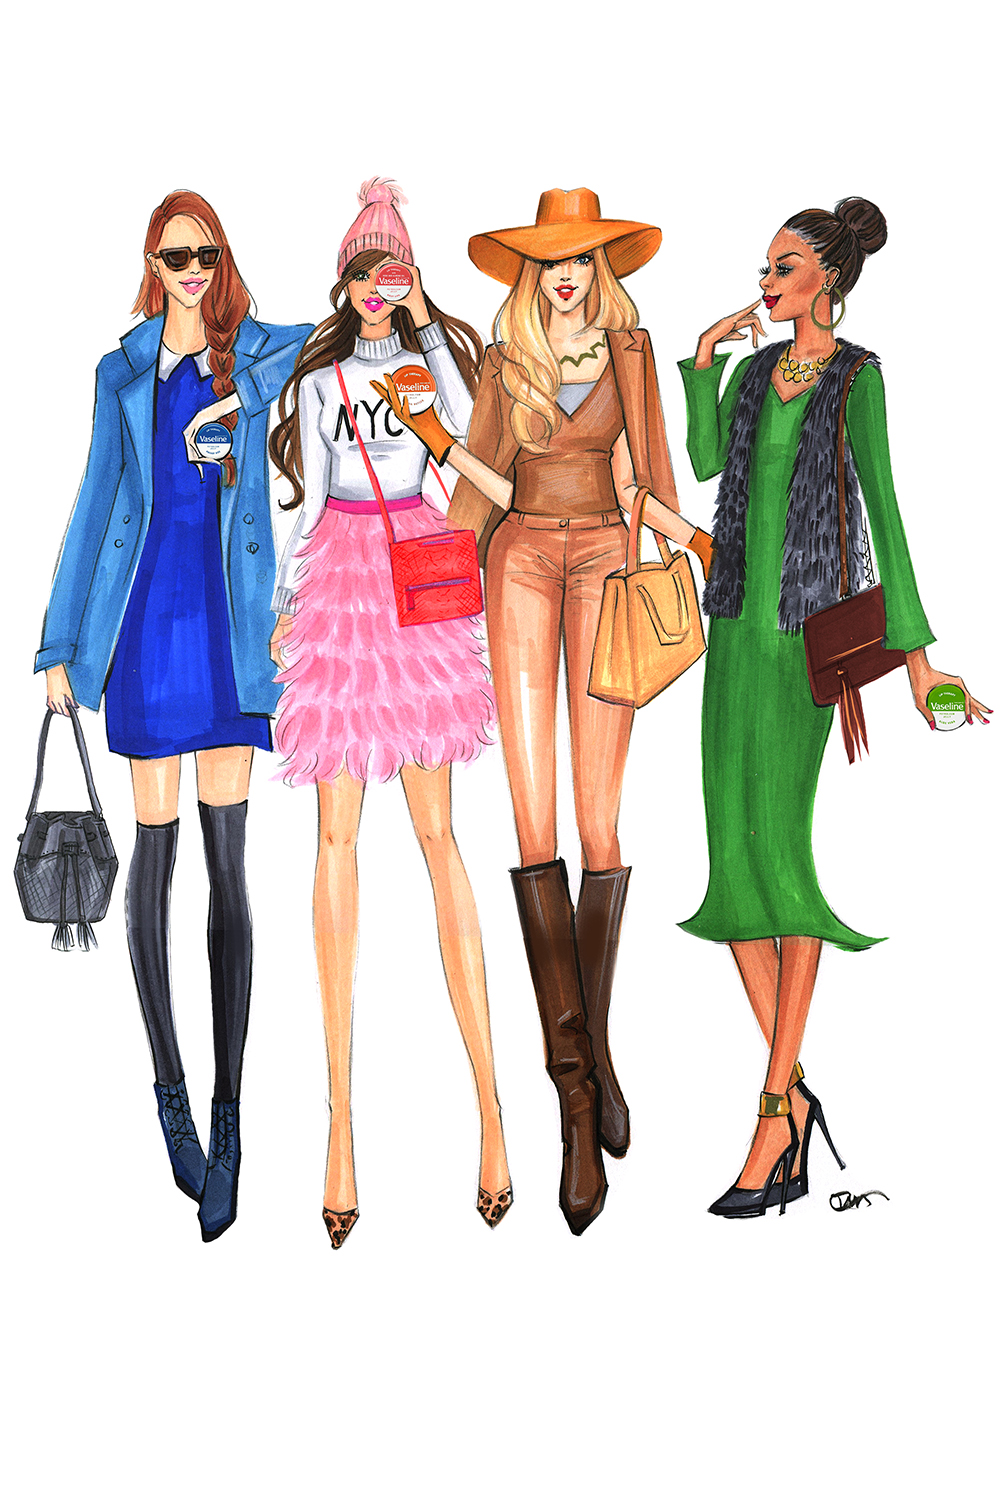 Fashion-Illustration-for-Vasletine and Gigi New York-by-Fashion-Illustrator-Rongrong-DeVoe